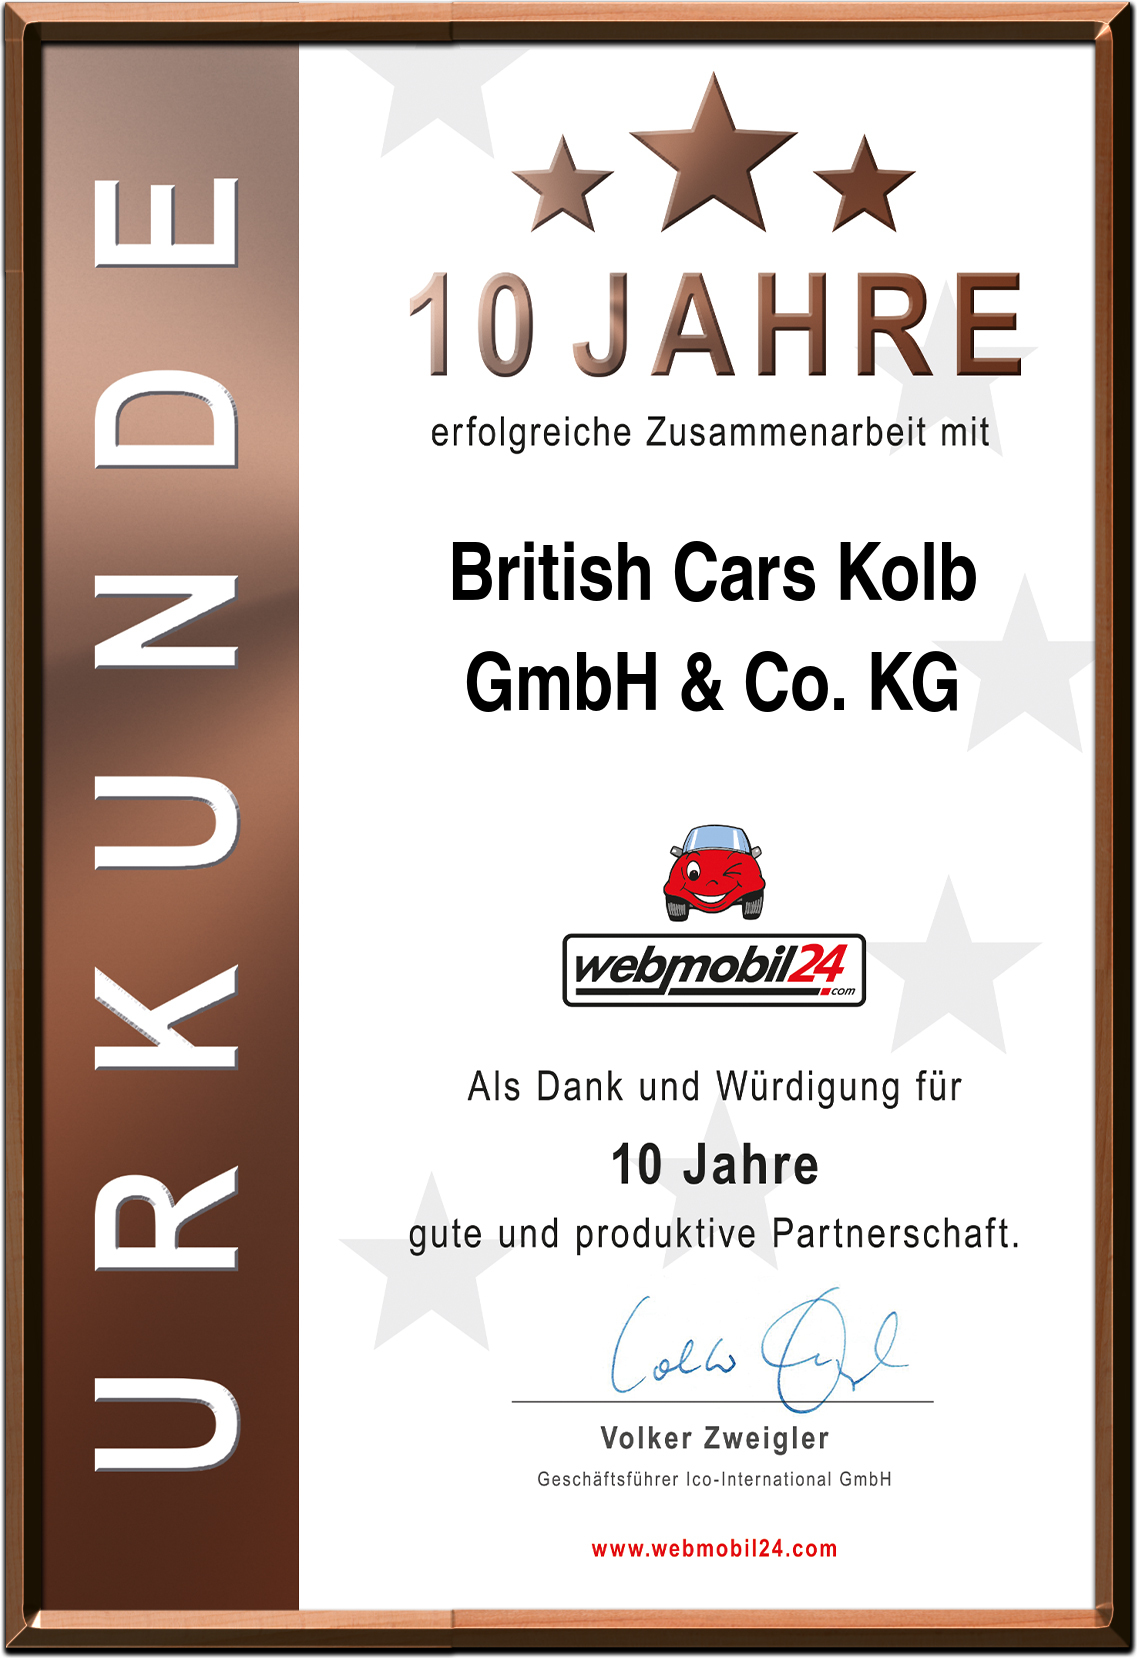 British Cars Kolb GmbH & Co. KG